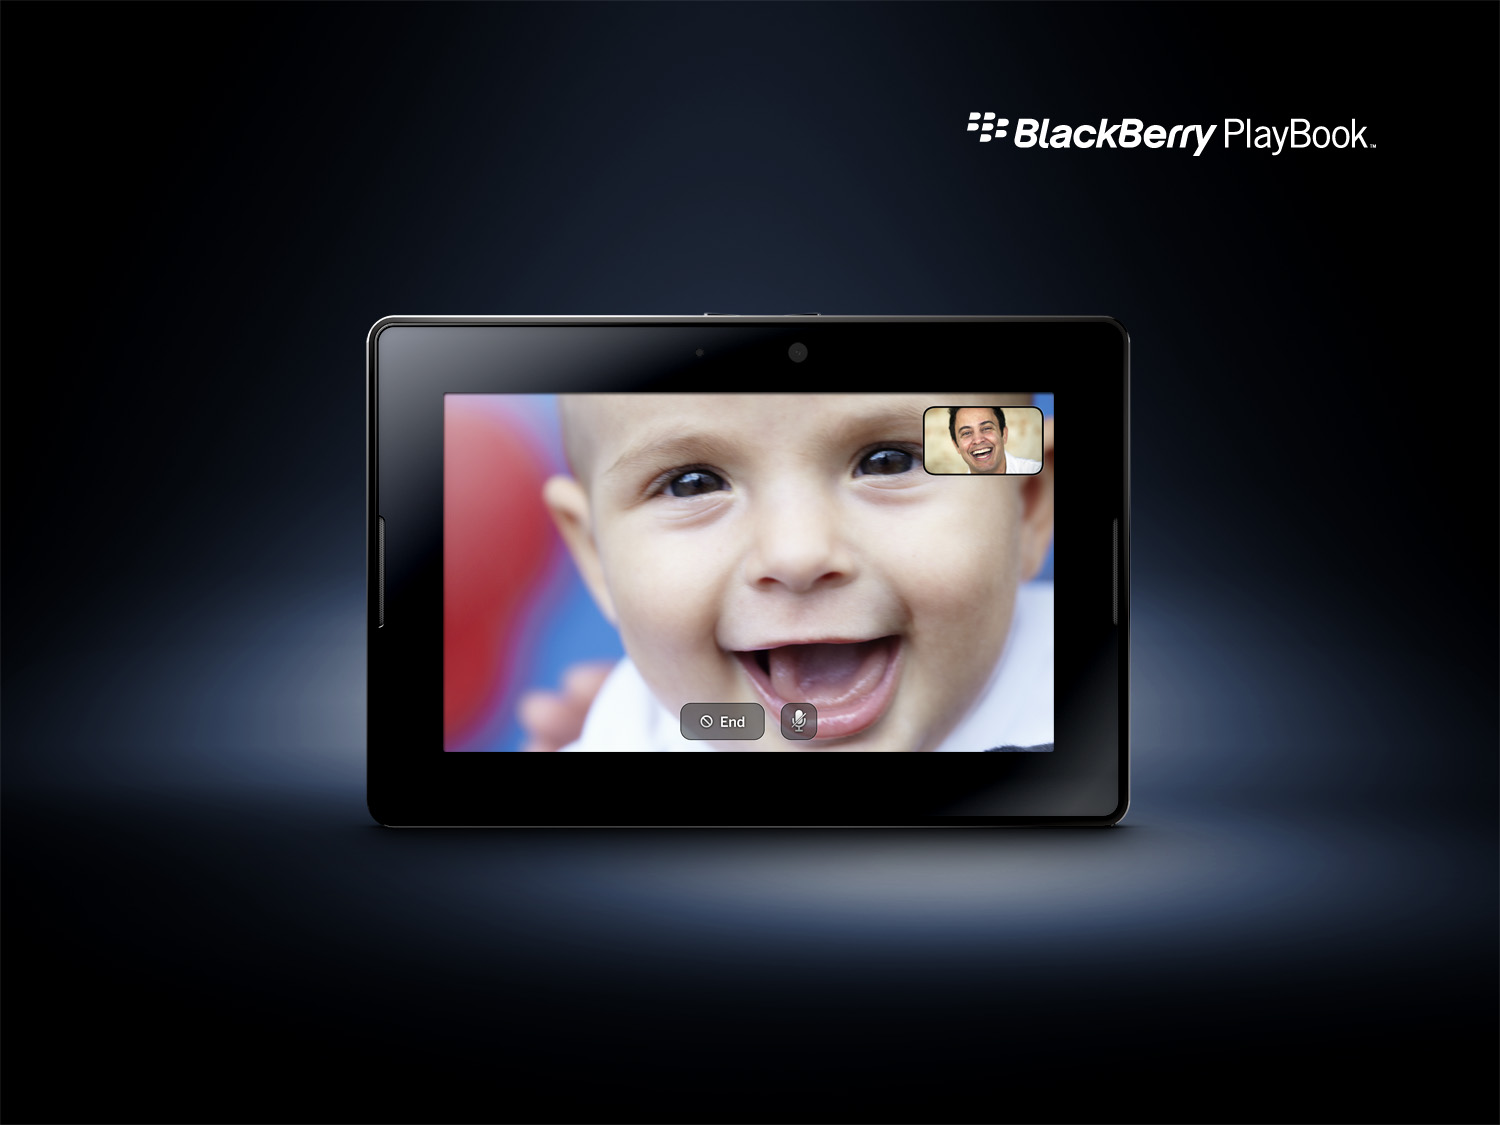 BlackBerry PlayBook official: 7-Inch 1GHz